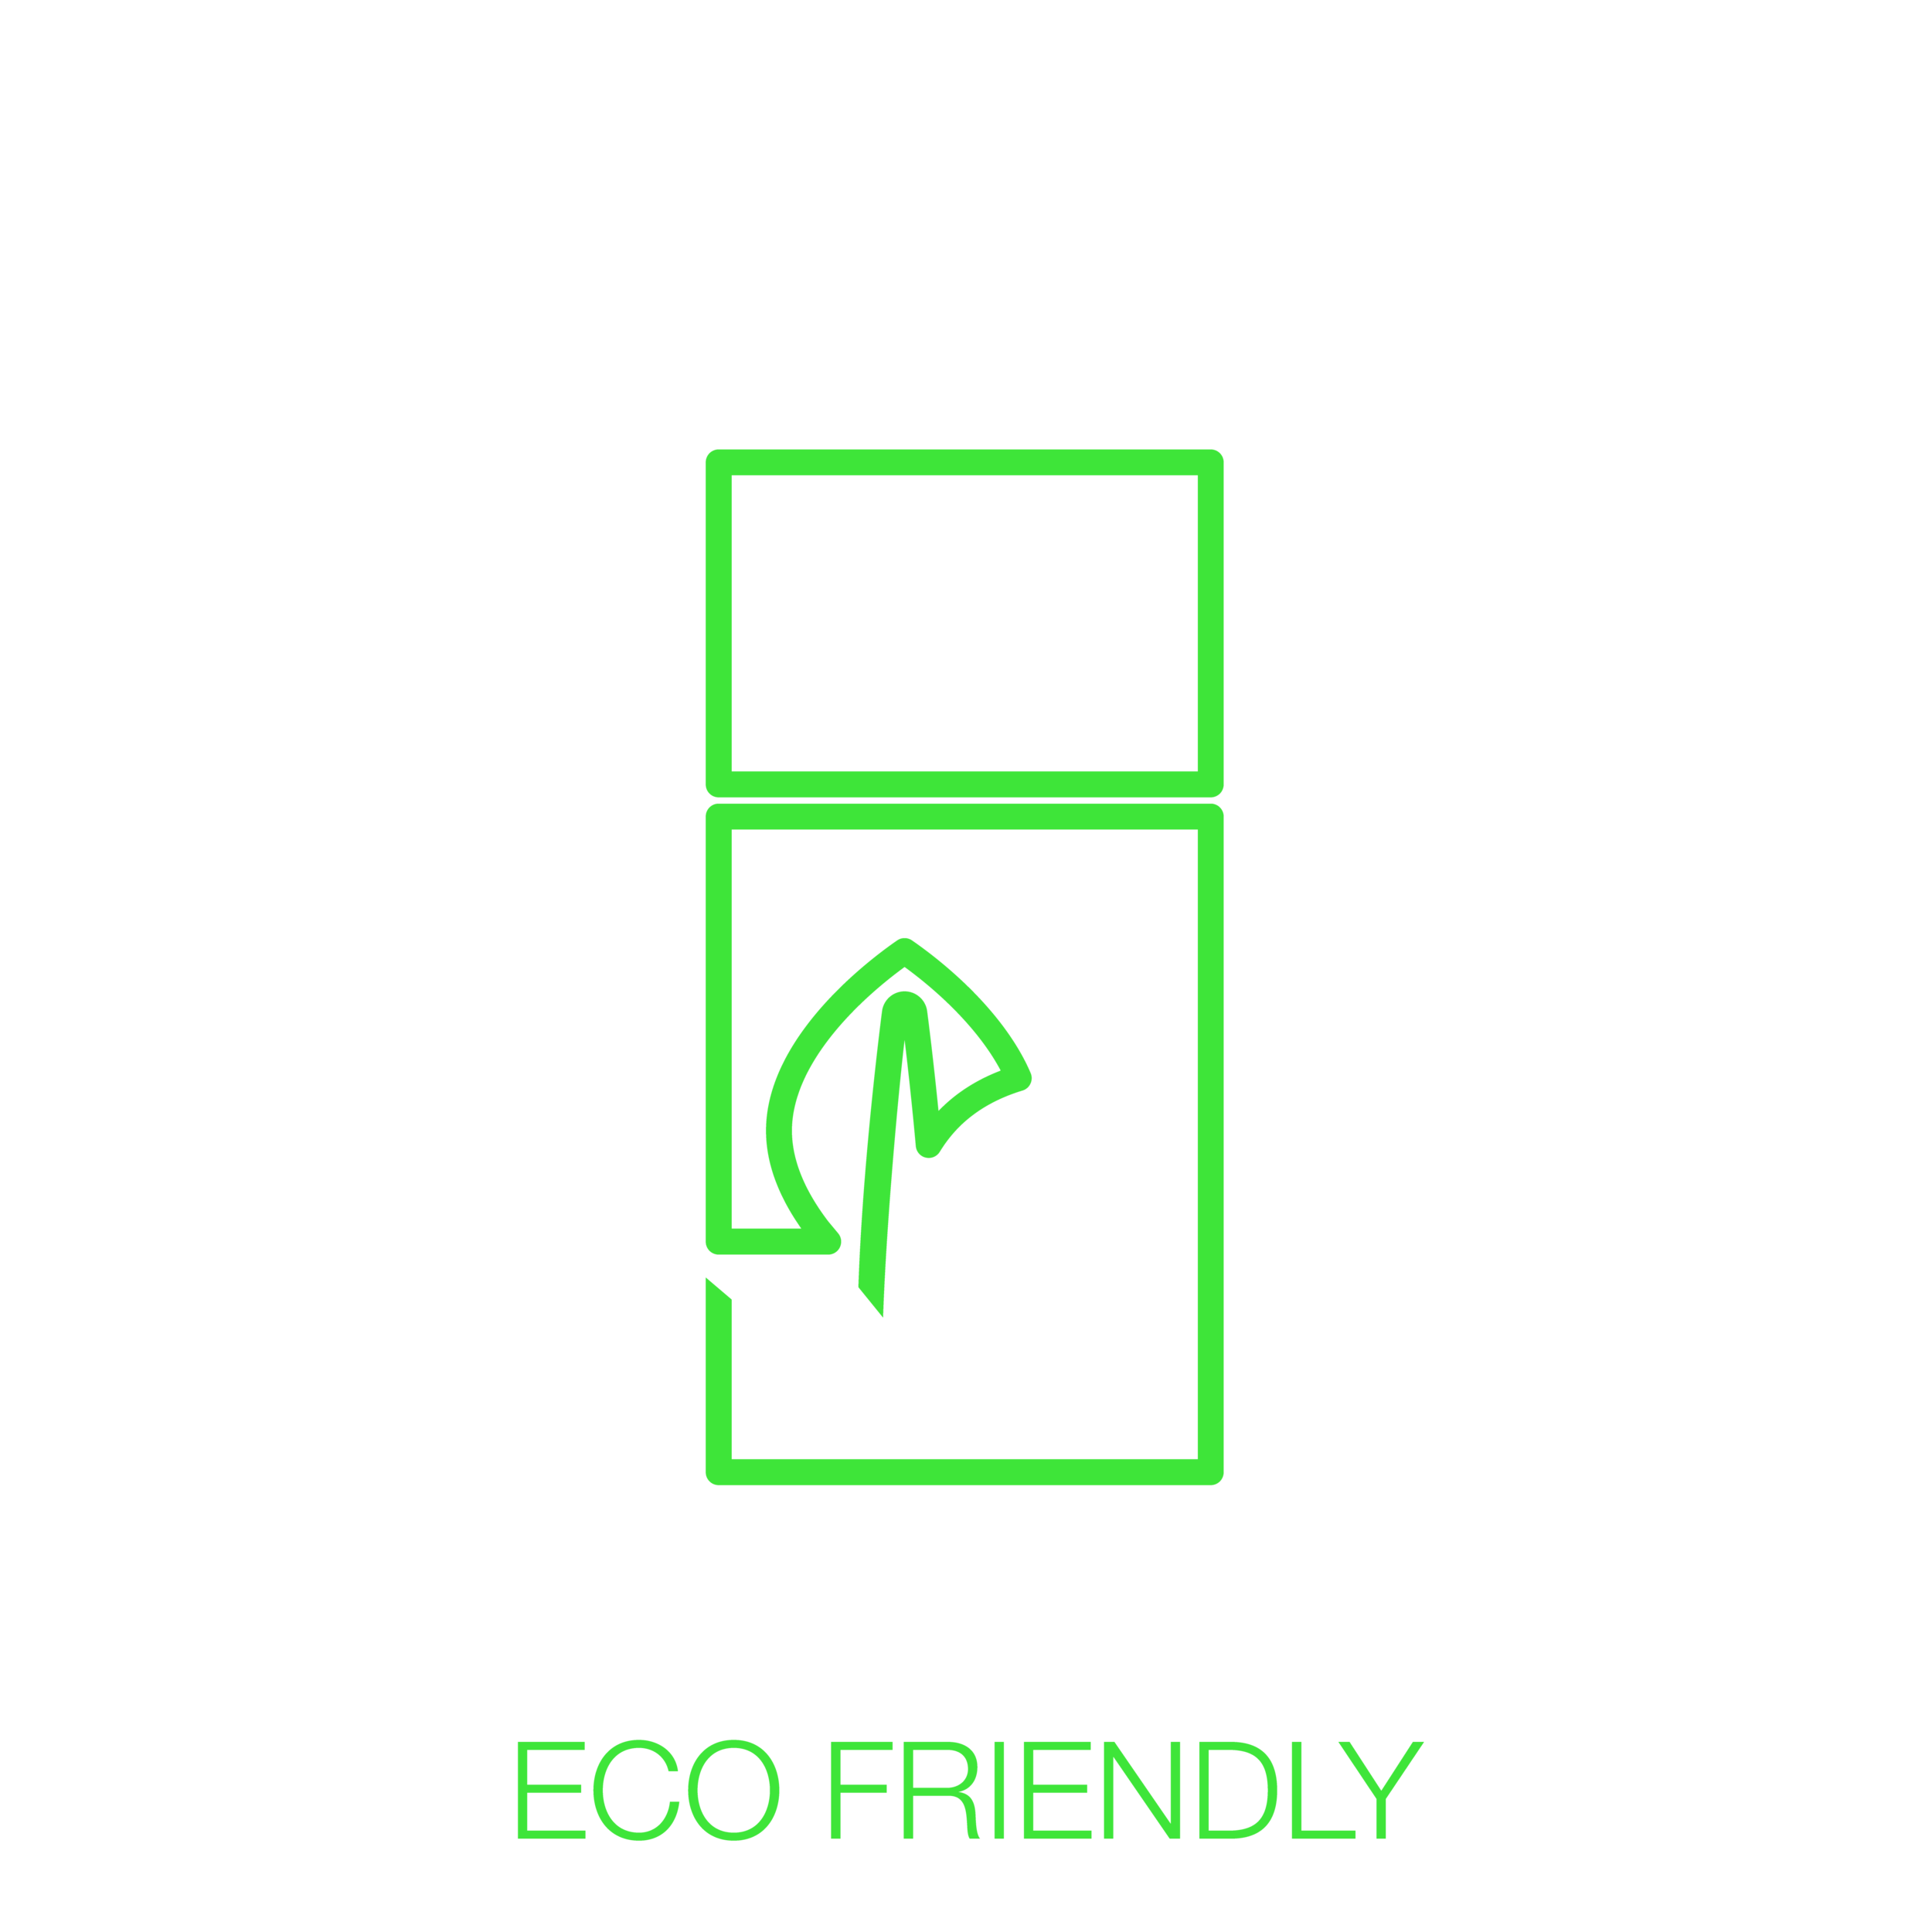 EcoFriendly Thumbnail-01.png